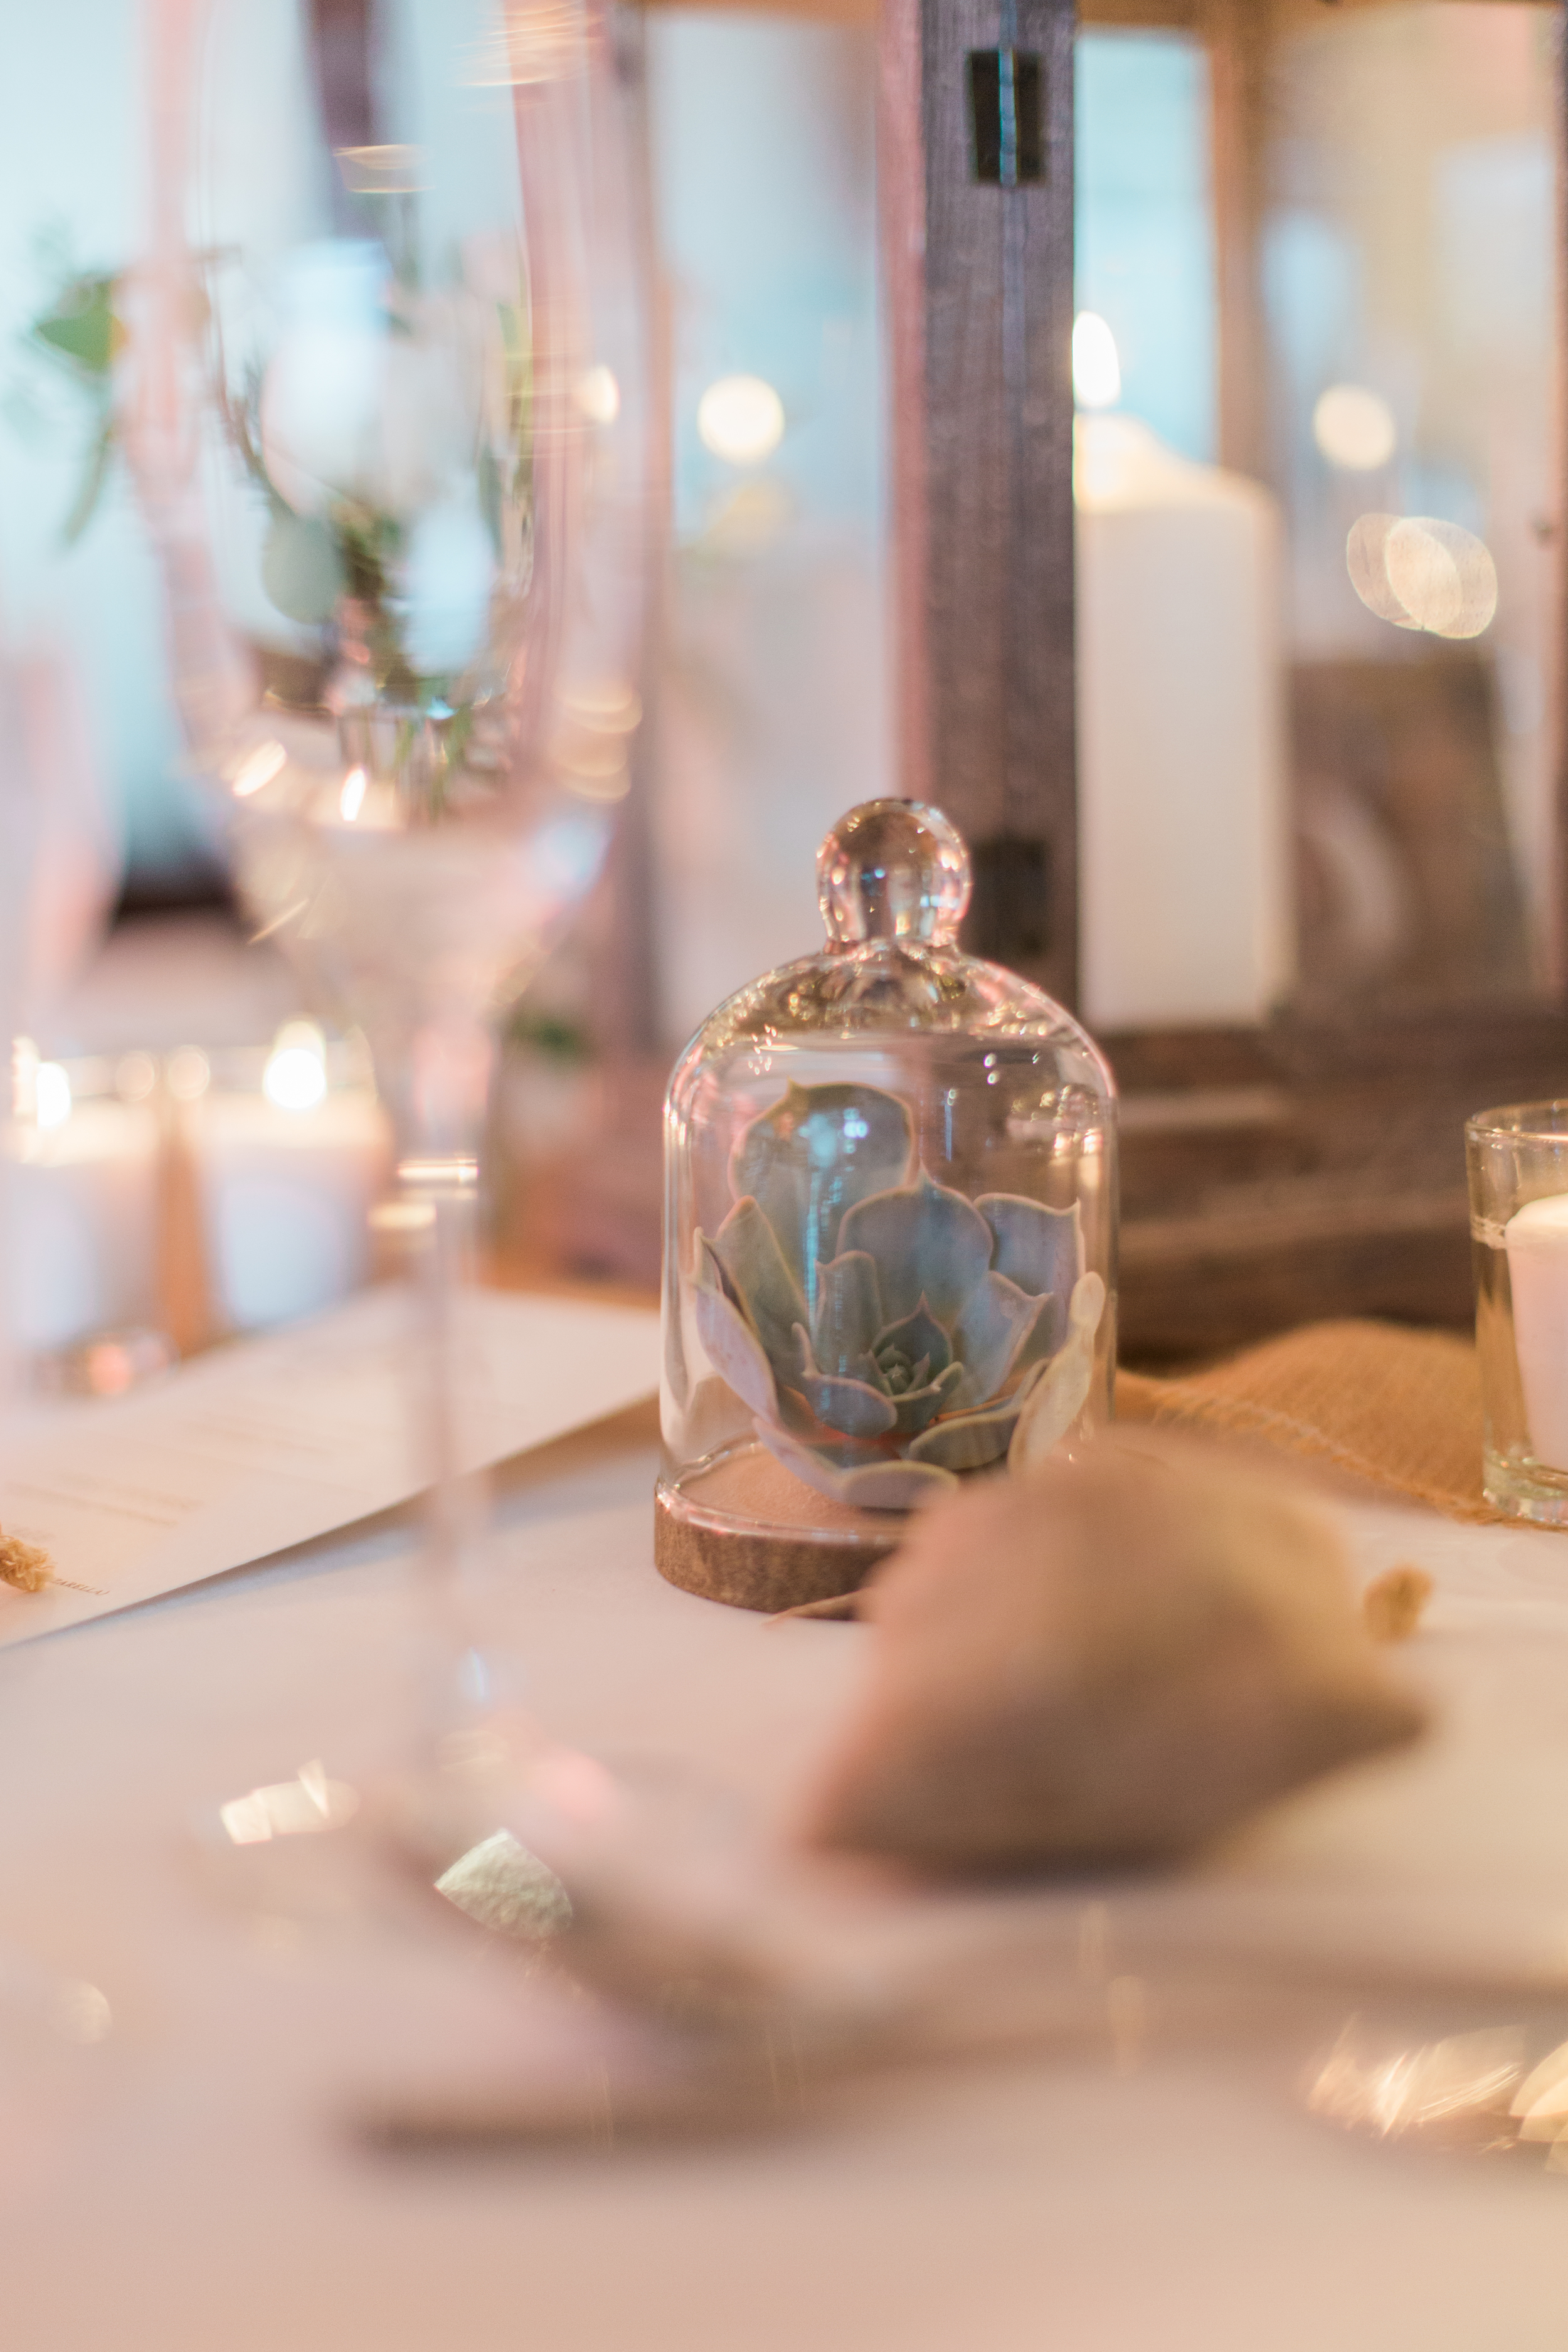 South-Jersey-Wedding-Photographer_The-Reeds-At-Shelter-Haven-Wedding-60.jpg